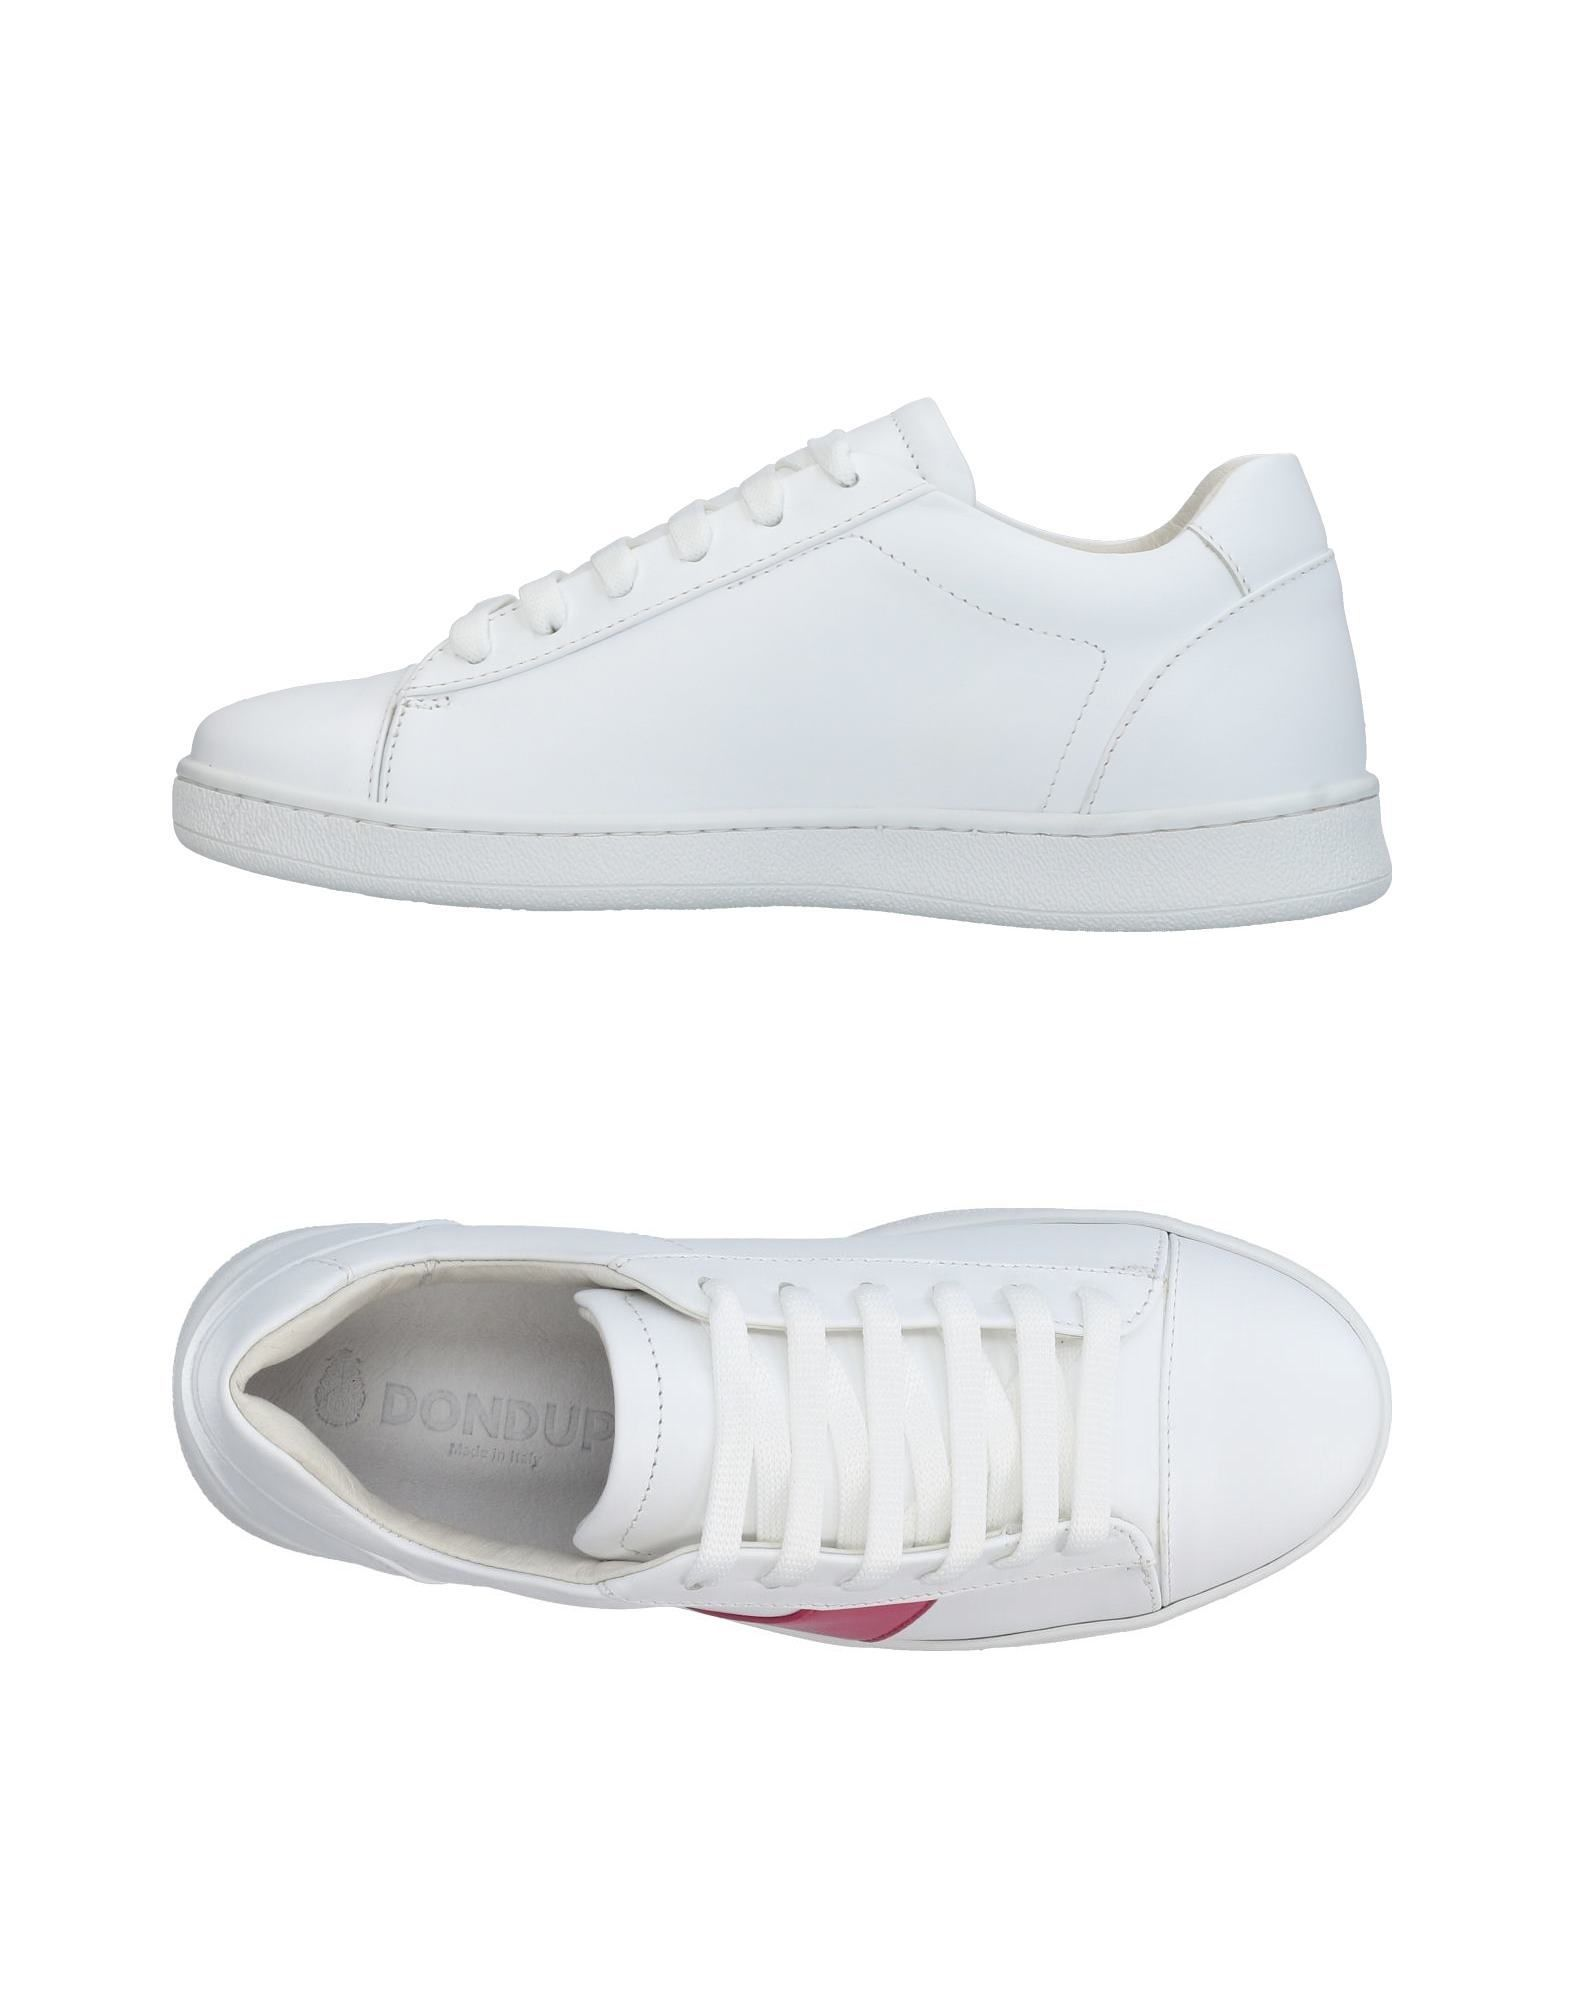 Sneakers Dondup Donna - Acquista online su